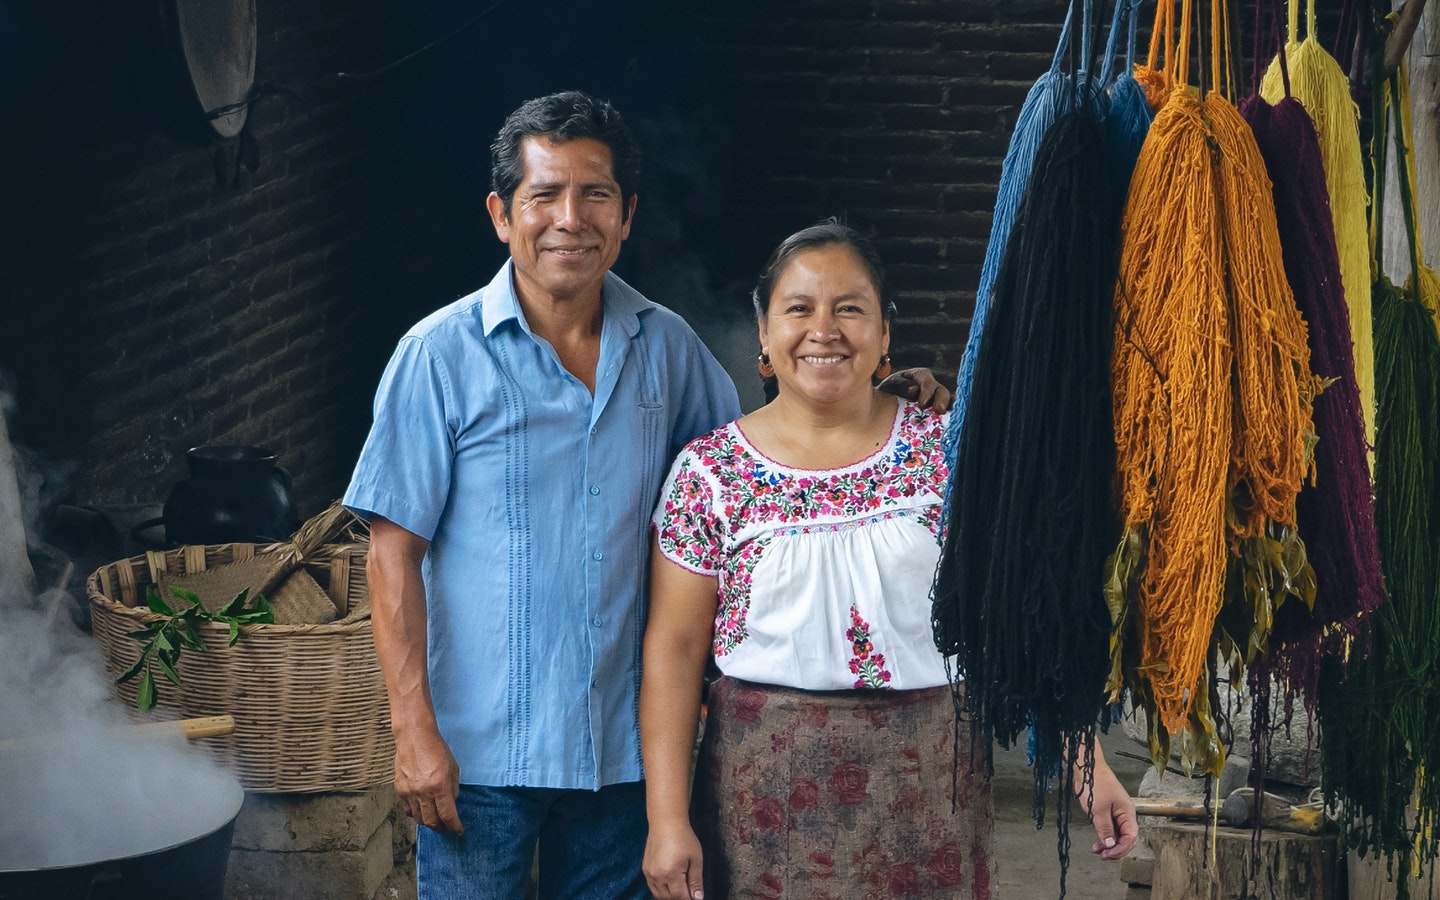 Dyeing and Weaving in the Zapotec Tradition with Jacobo & Maria